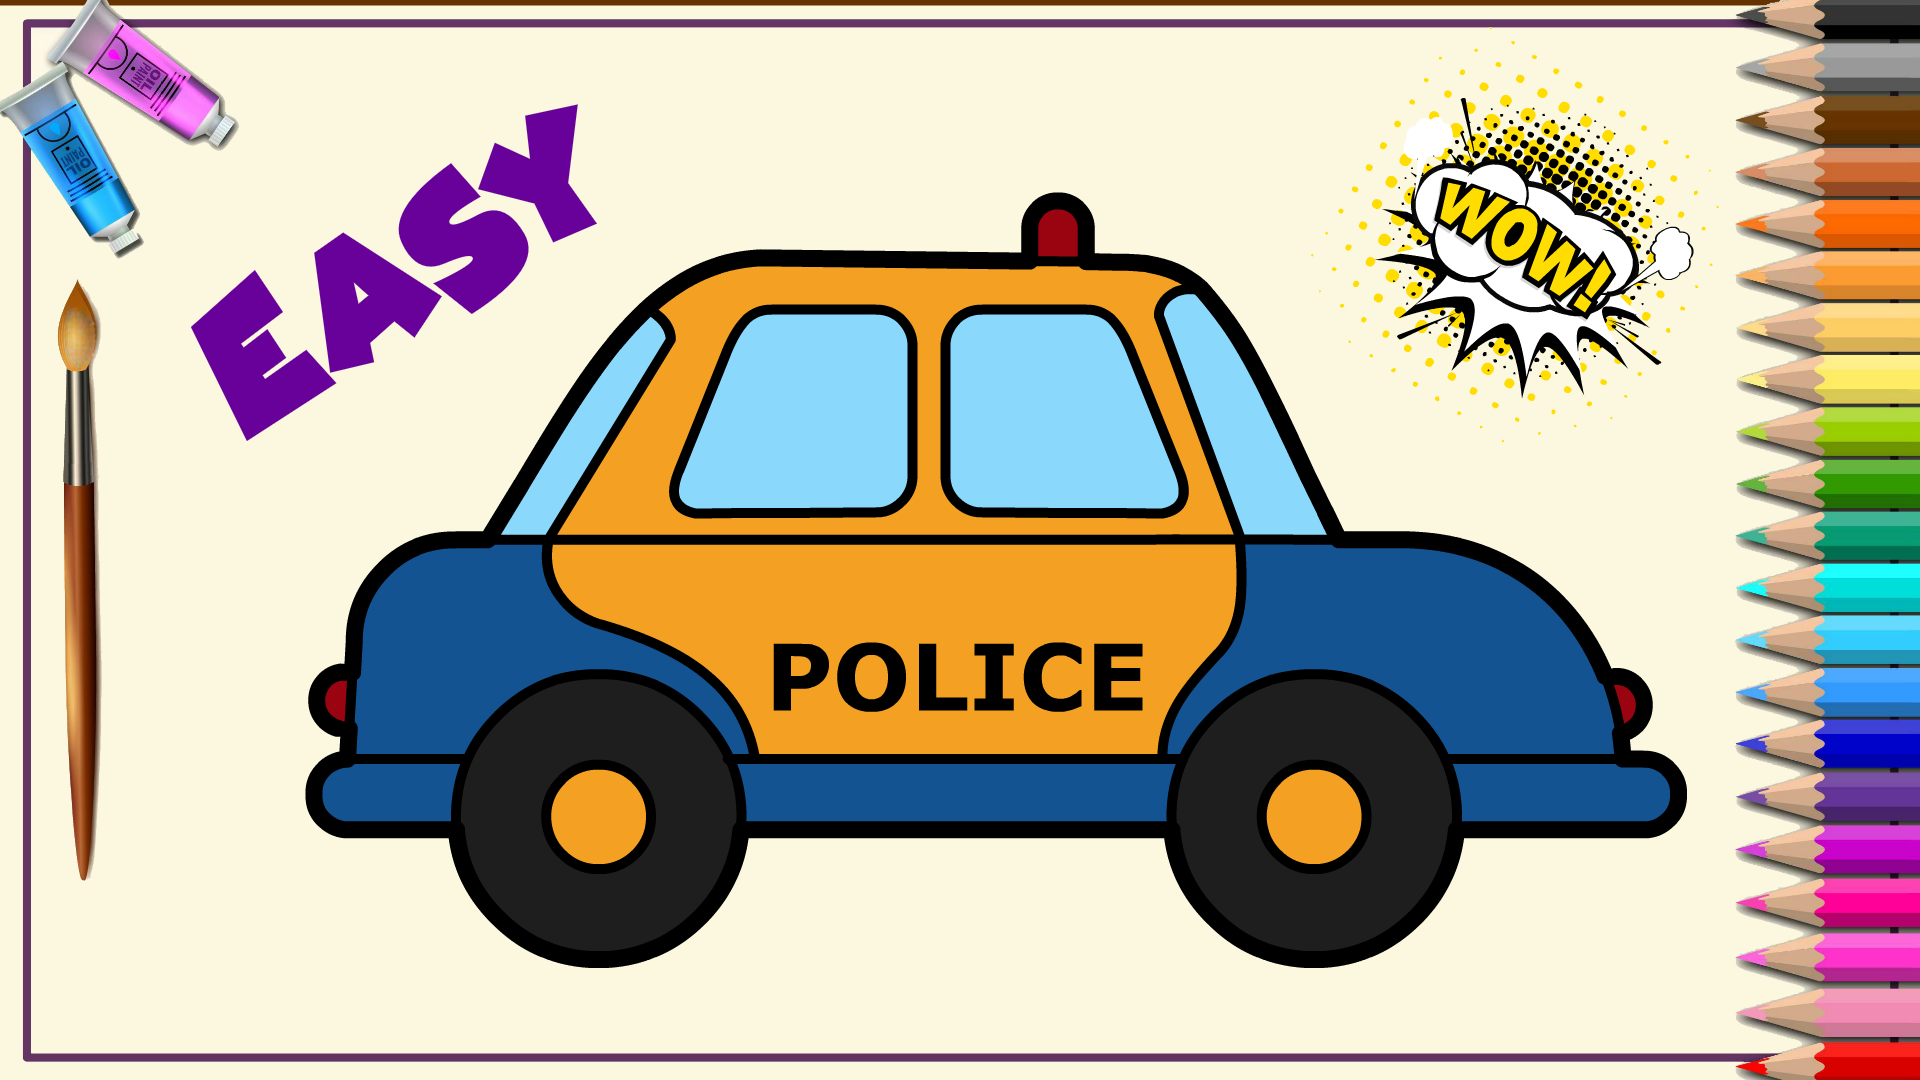 How to draw and color a beautiful police car | Easy ...